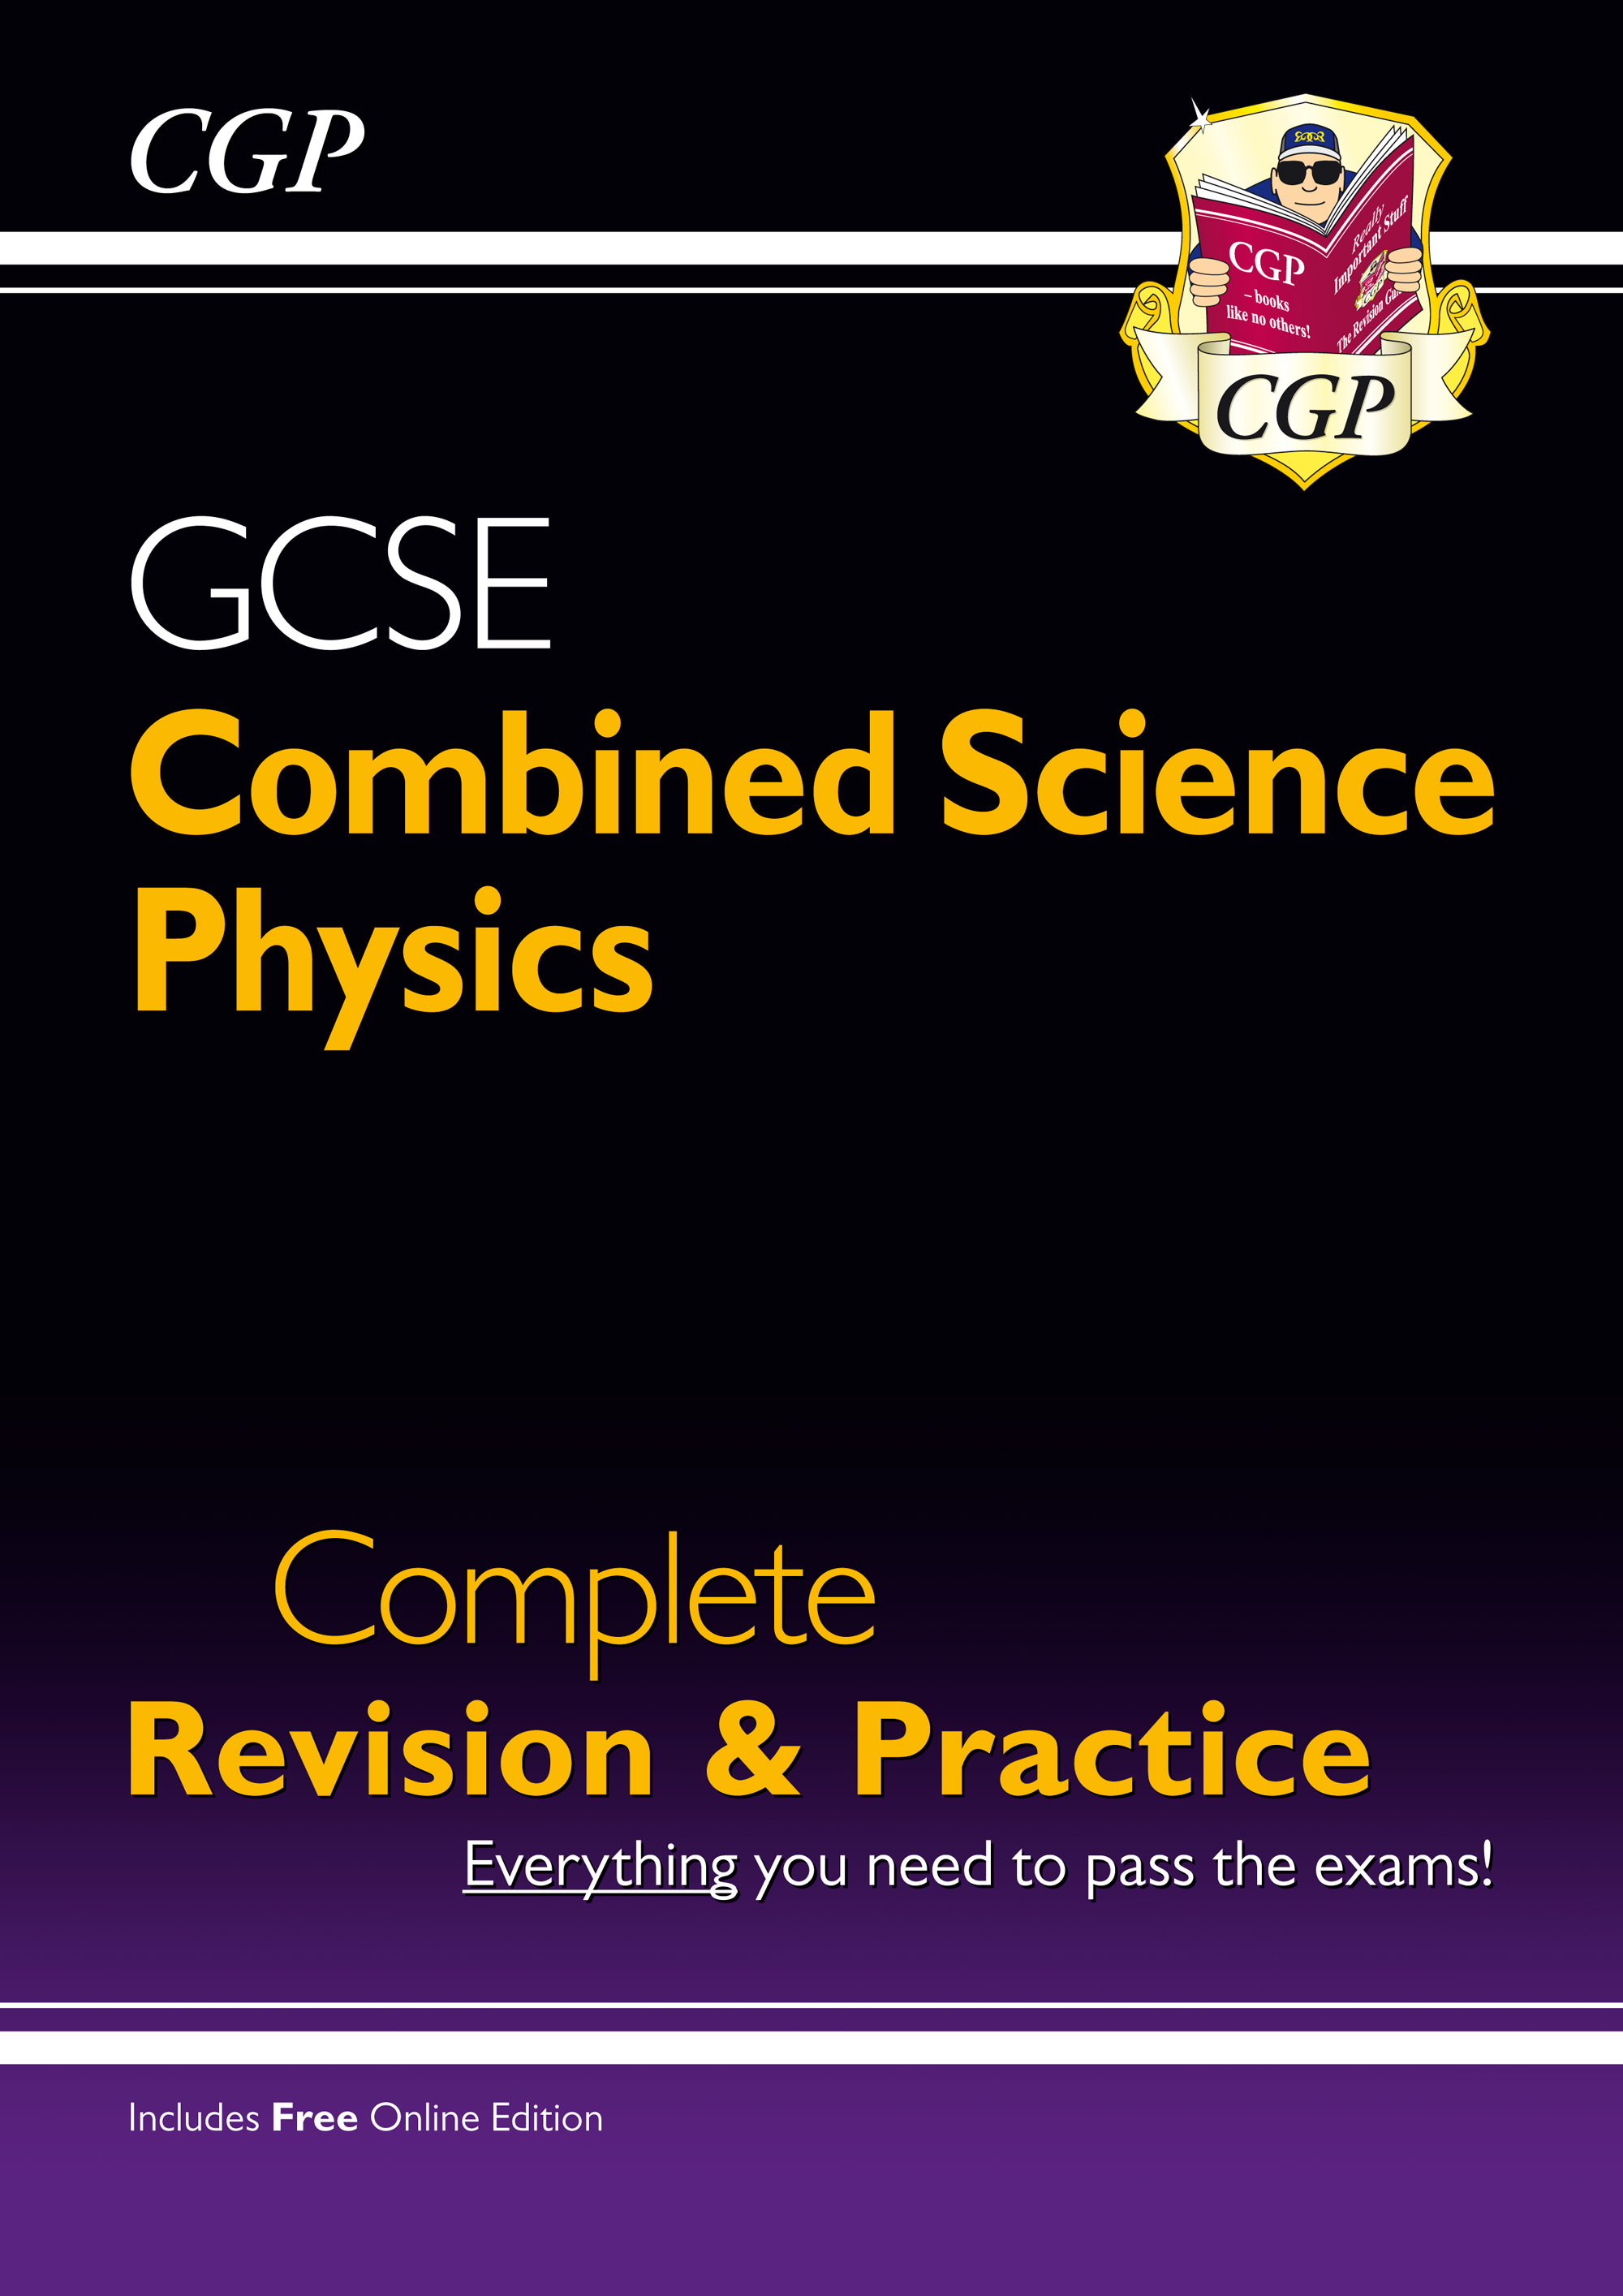 SCPS41 - Grade 9-1 GCSE Combined Science: Physics Complete Revision & Practice with Online Edition